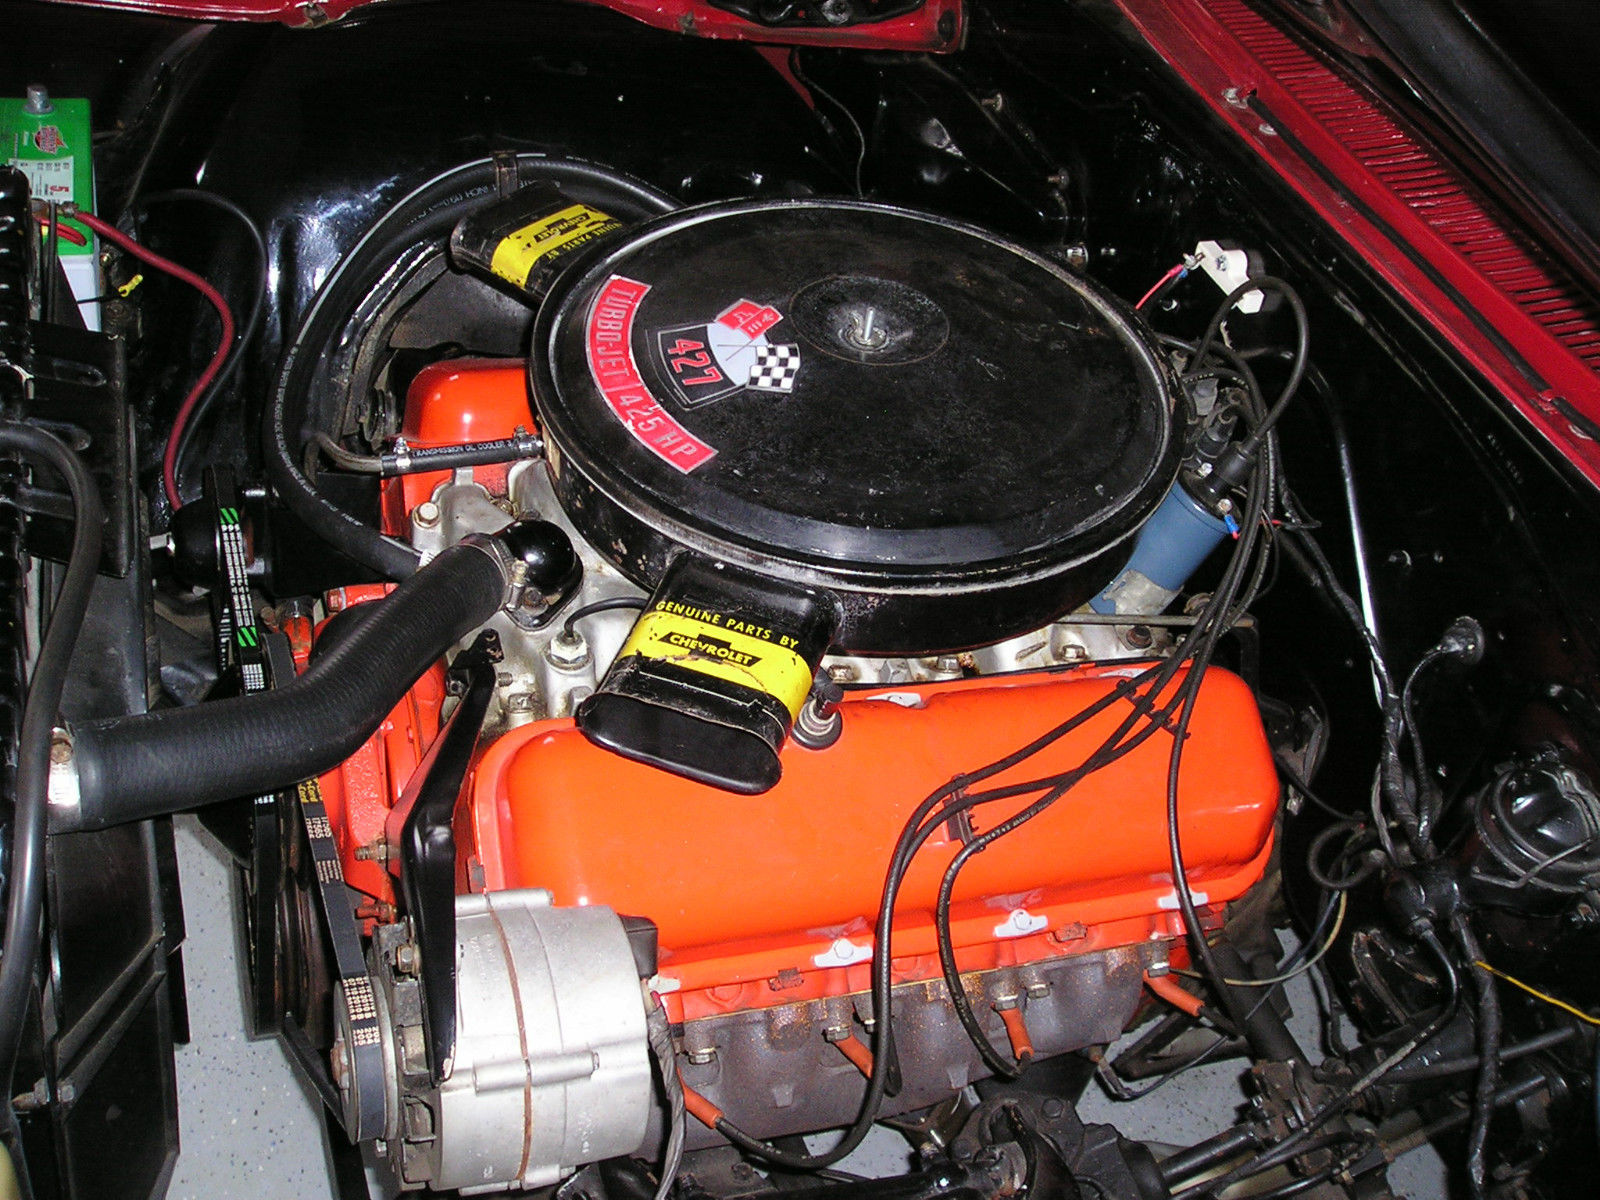 427 425hp Matching Engine Biscaynesuper Sport Impalacaprice 1966 Chevrolet Bel Air Impala Technical Specifications Of 150 210